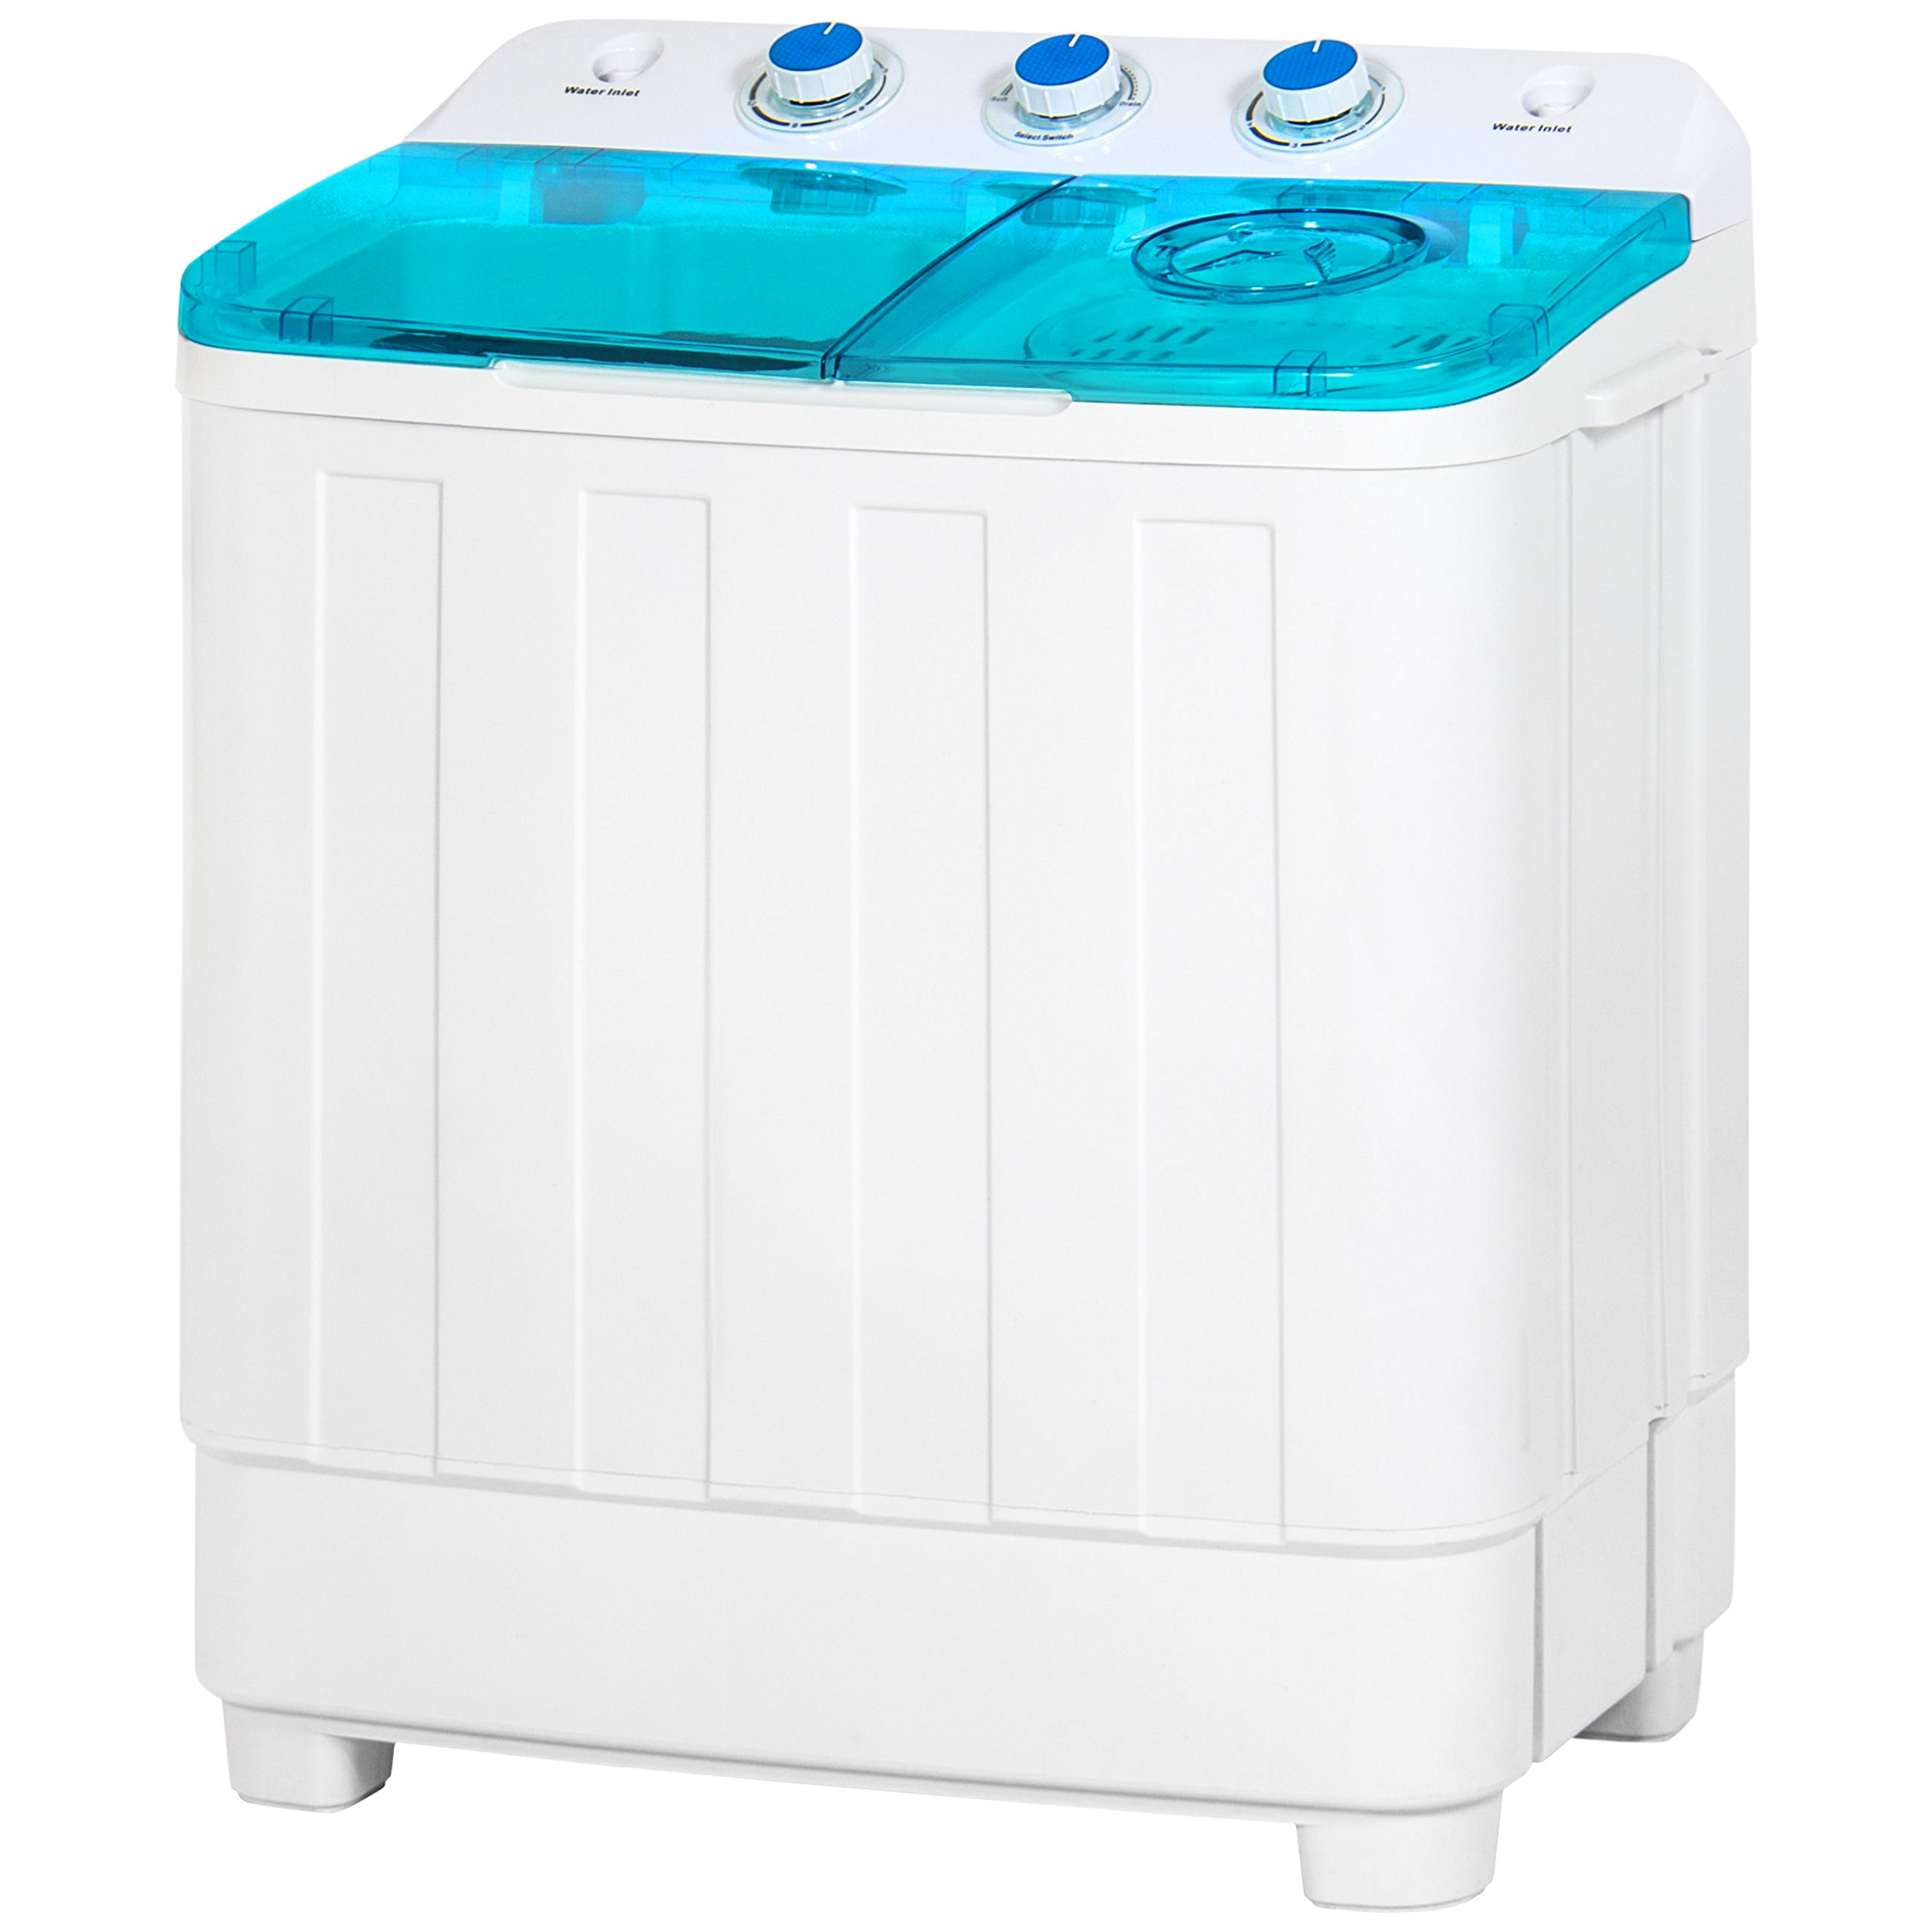 Best Choice Products Portable Mini Twin Tub Compact Washing Machine w/ Spin Dry Cycle - White/Blue